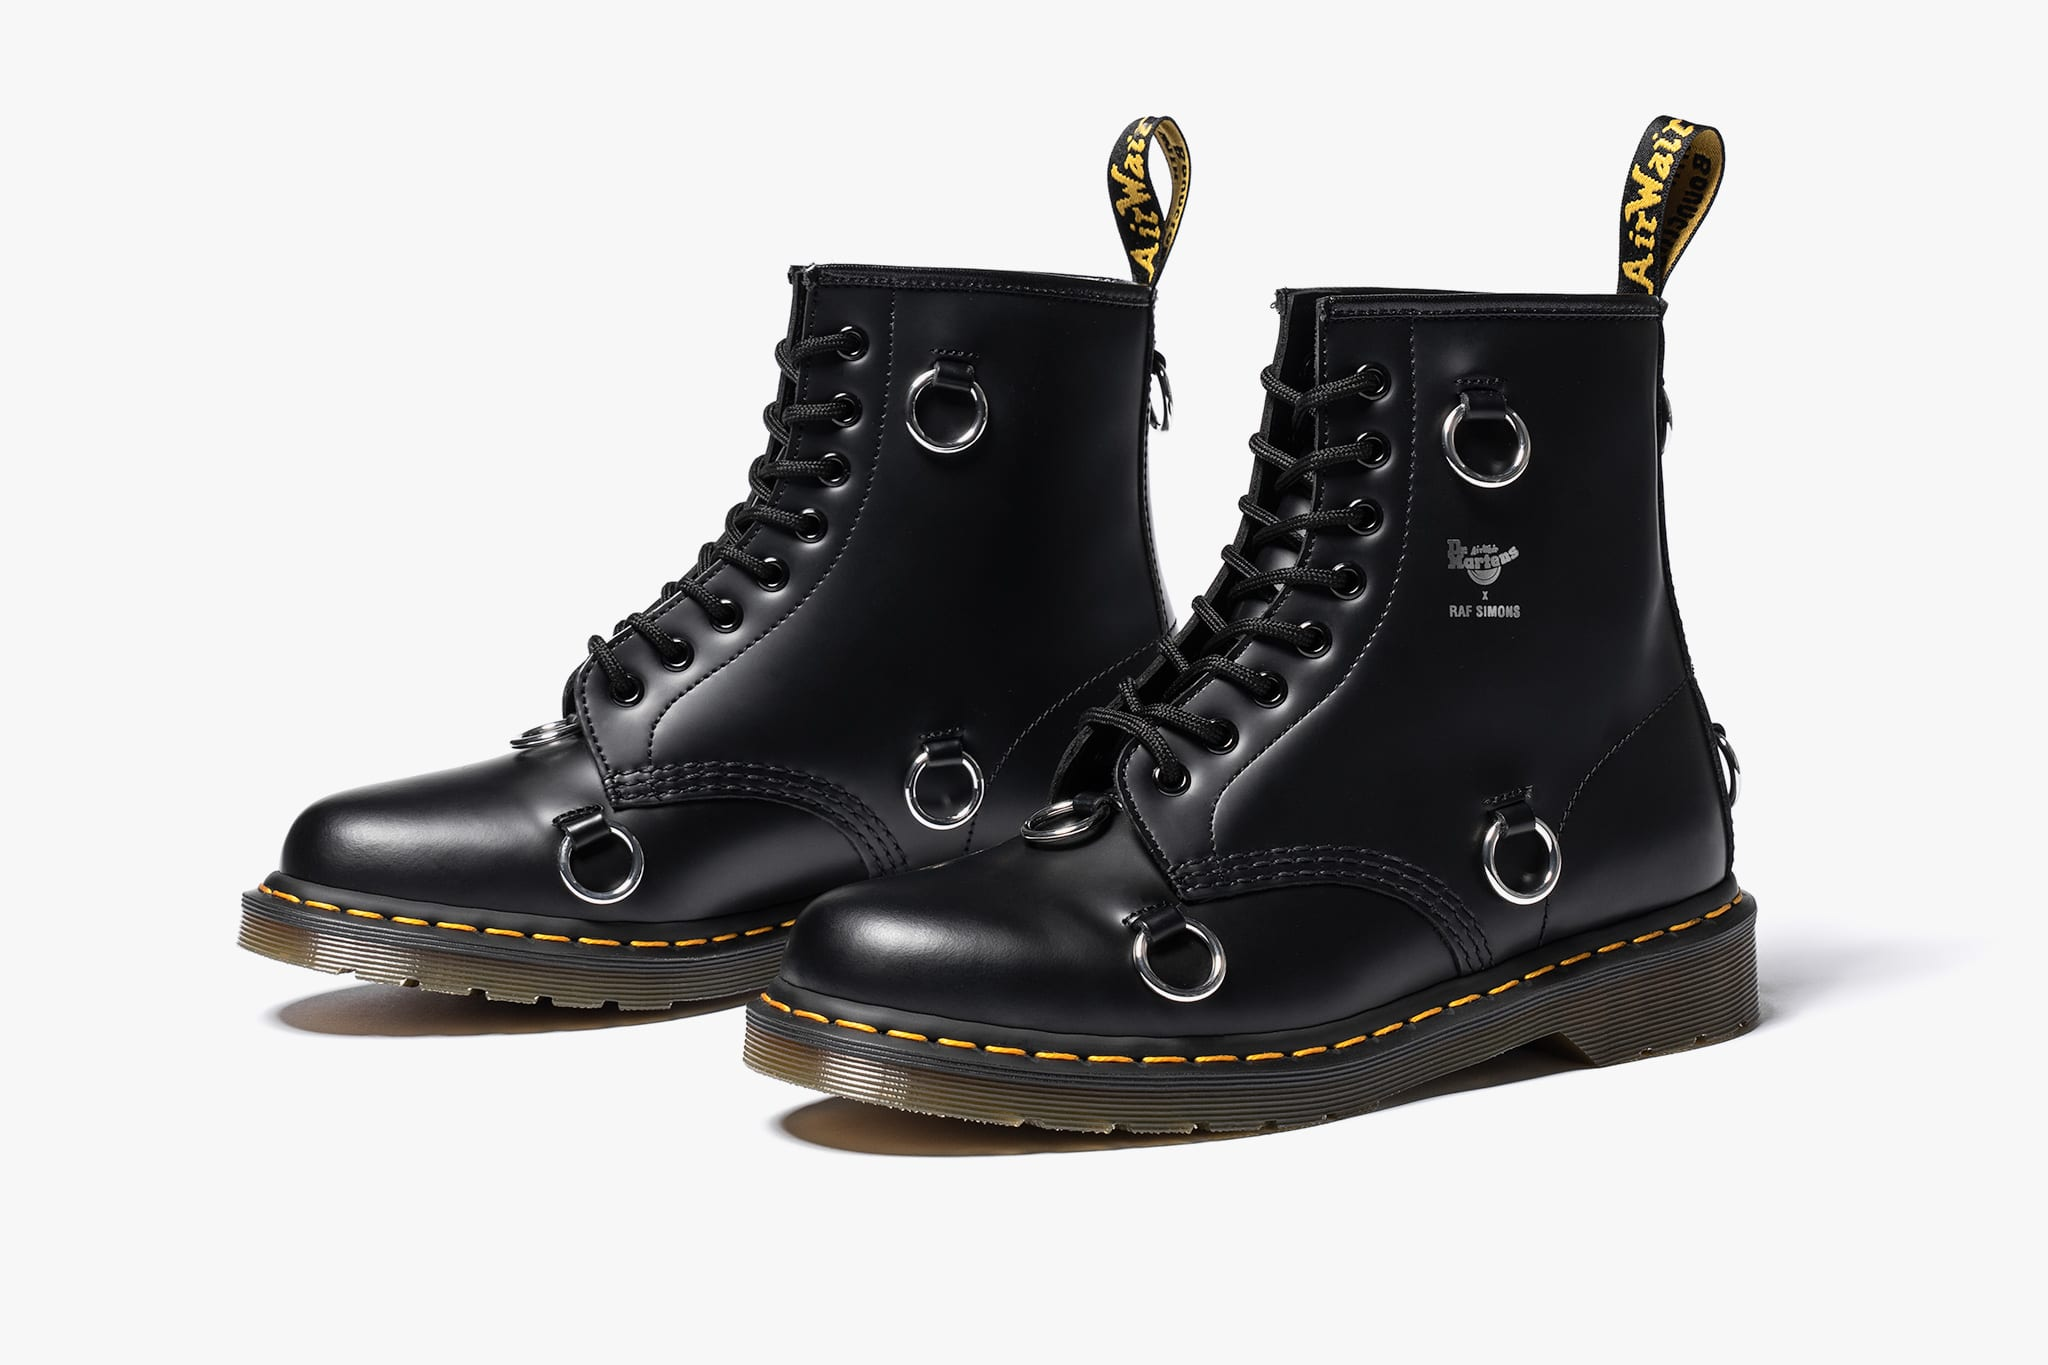 DR MARTENS RAF SIMONS SS20 NEW ARRIVALS HAVEN